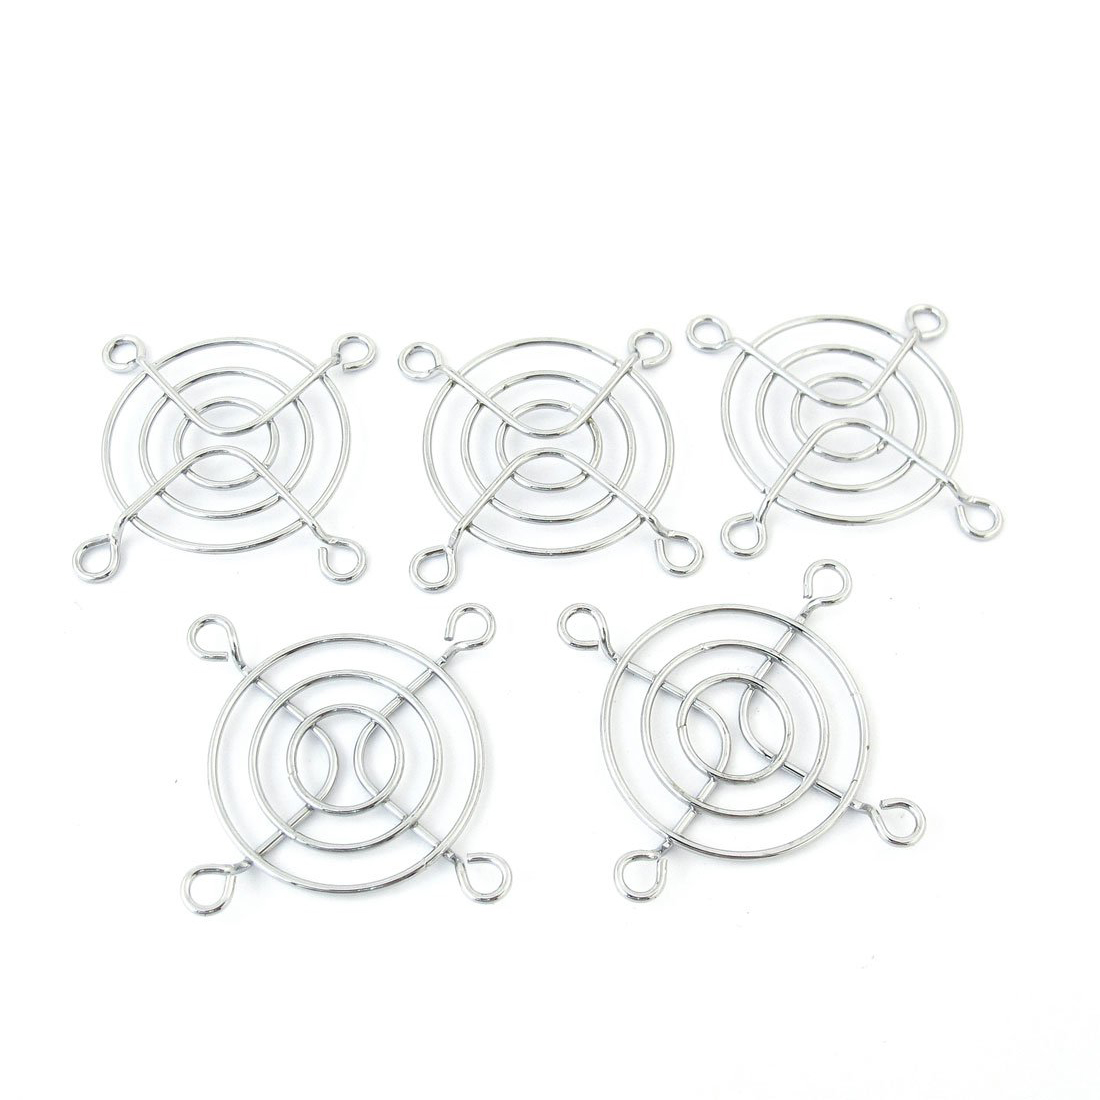 PROMOTION! 5 pcs 4cm Diameter Axial DC Fan Grill Metal PC Finger Guard Protector 3pcs gdstime 200mm chrome metal computer pc fan grill mounting finger guard protection